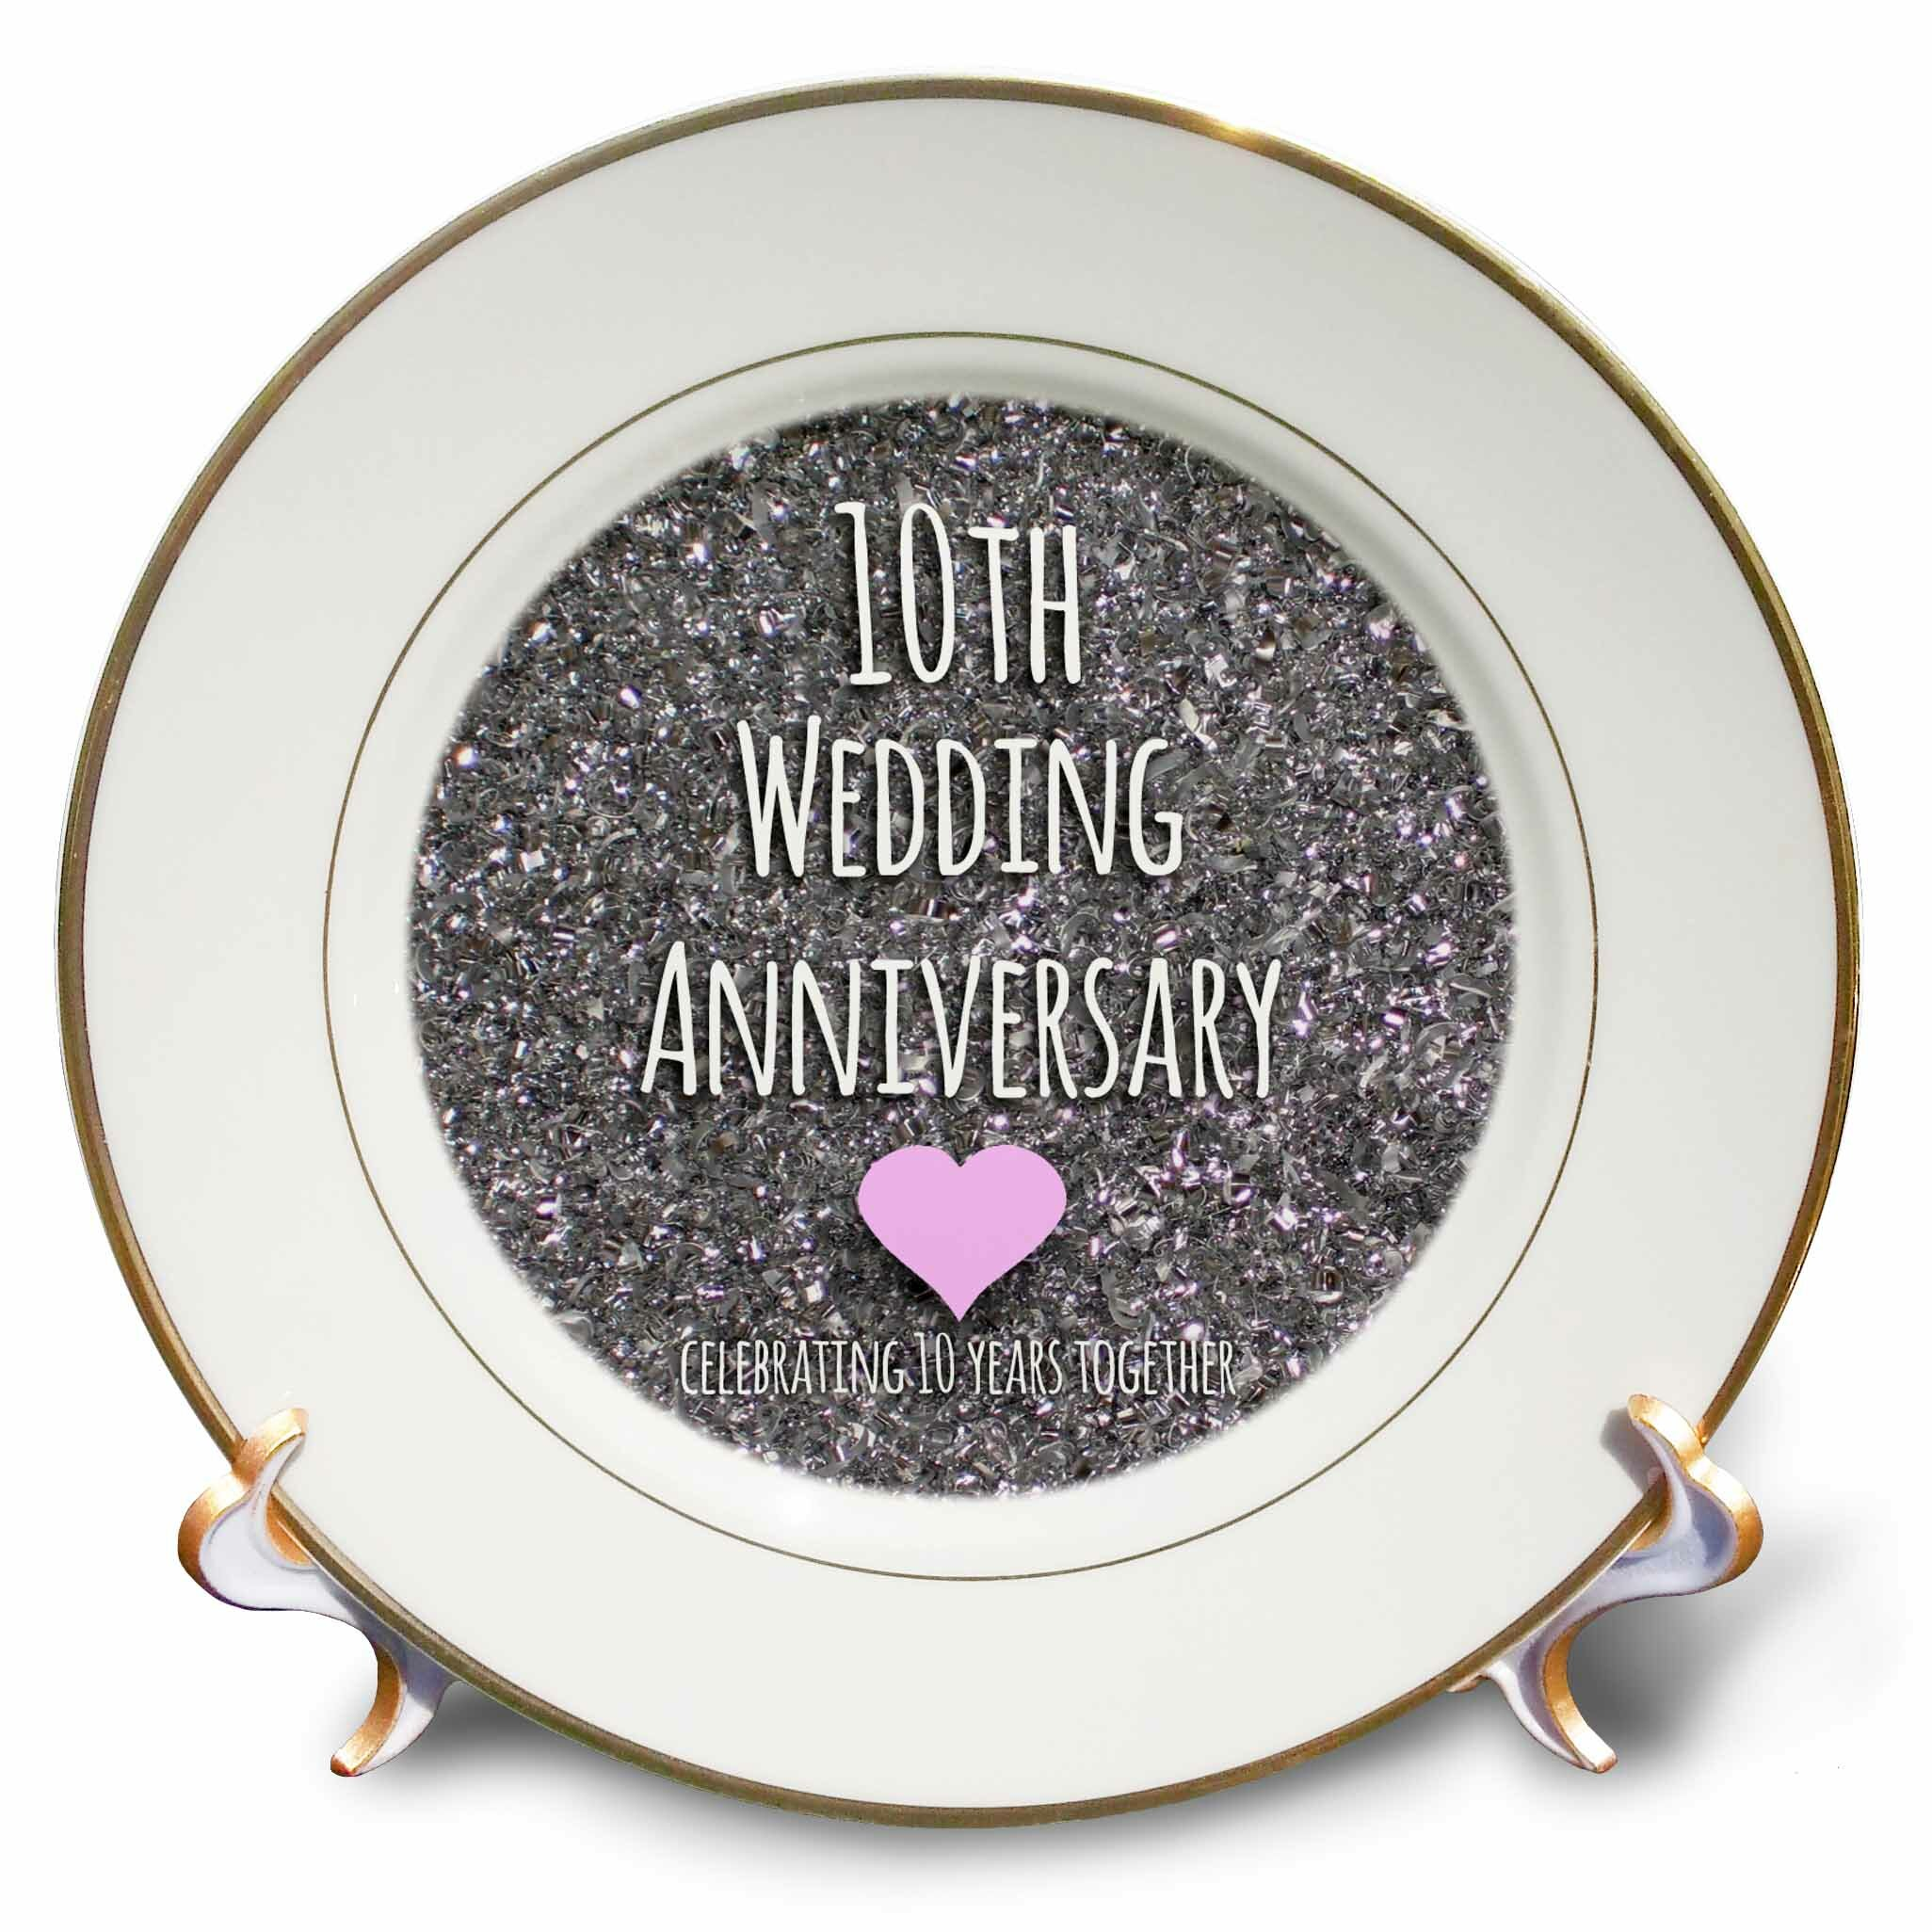 East Urban Home 10th Wedding Anniversary Gift Tin Bits Photo Celebrating 10 Years Together Tenth Anniversaries Porcelain Decorative Plate Wayfair